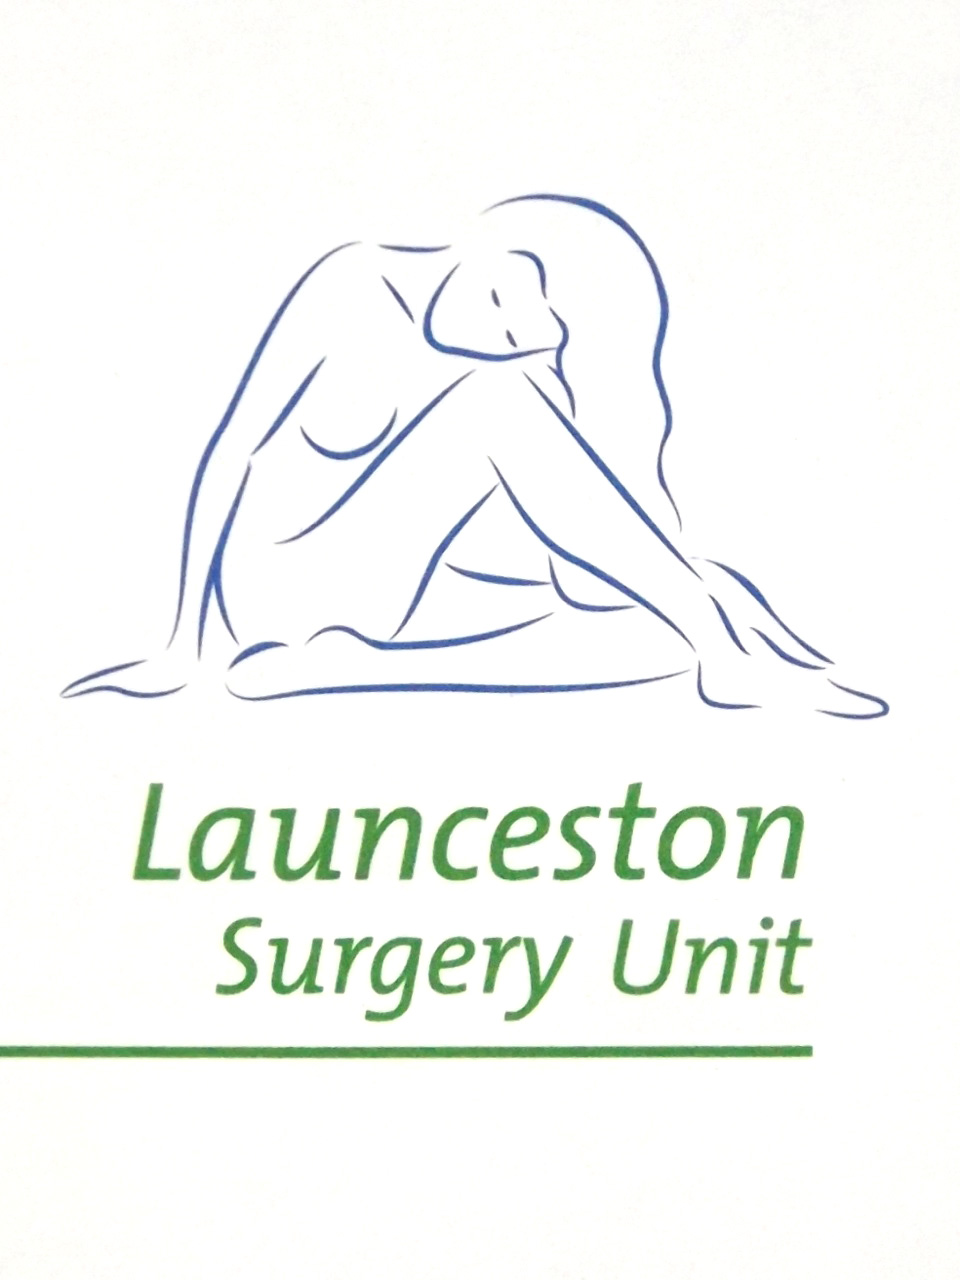 LAUNCESTON SURGERY UNIT - Branding, illustration and business collaterals.